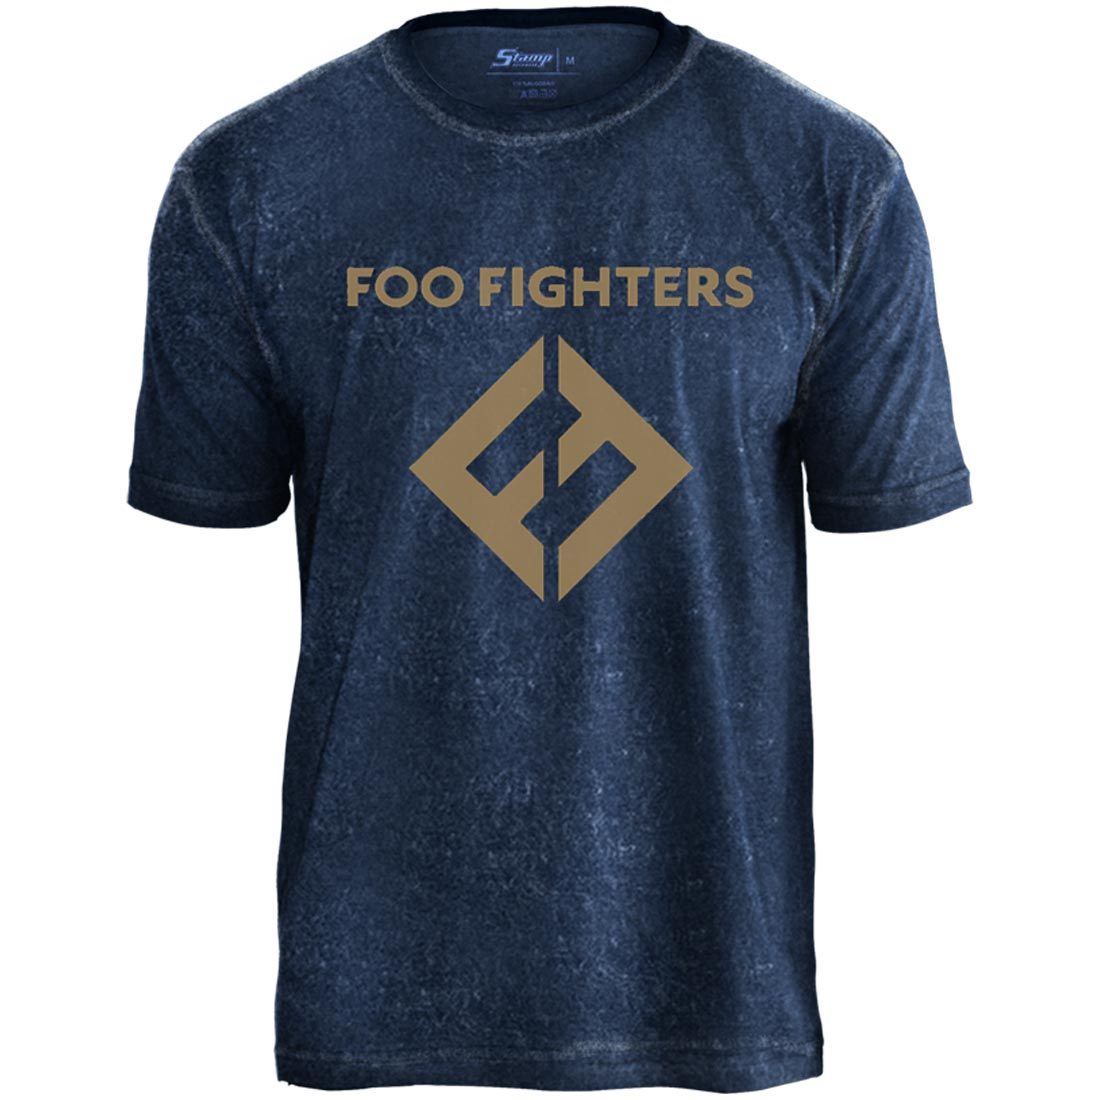 Camiseta Especial Foo Fighters